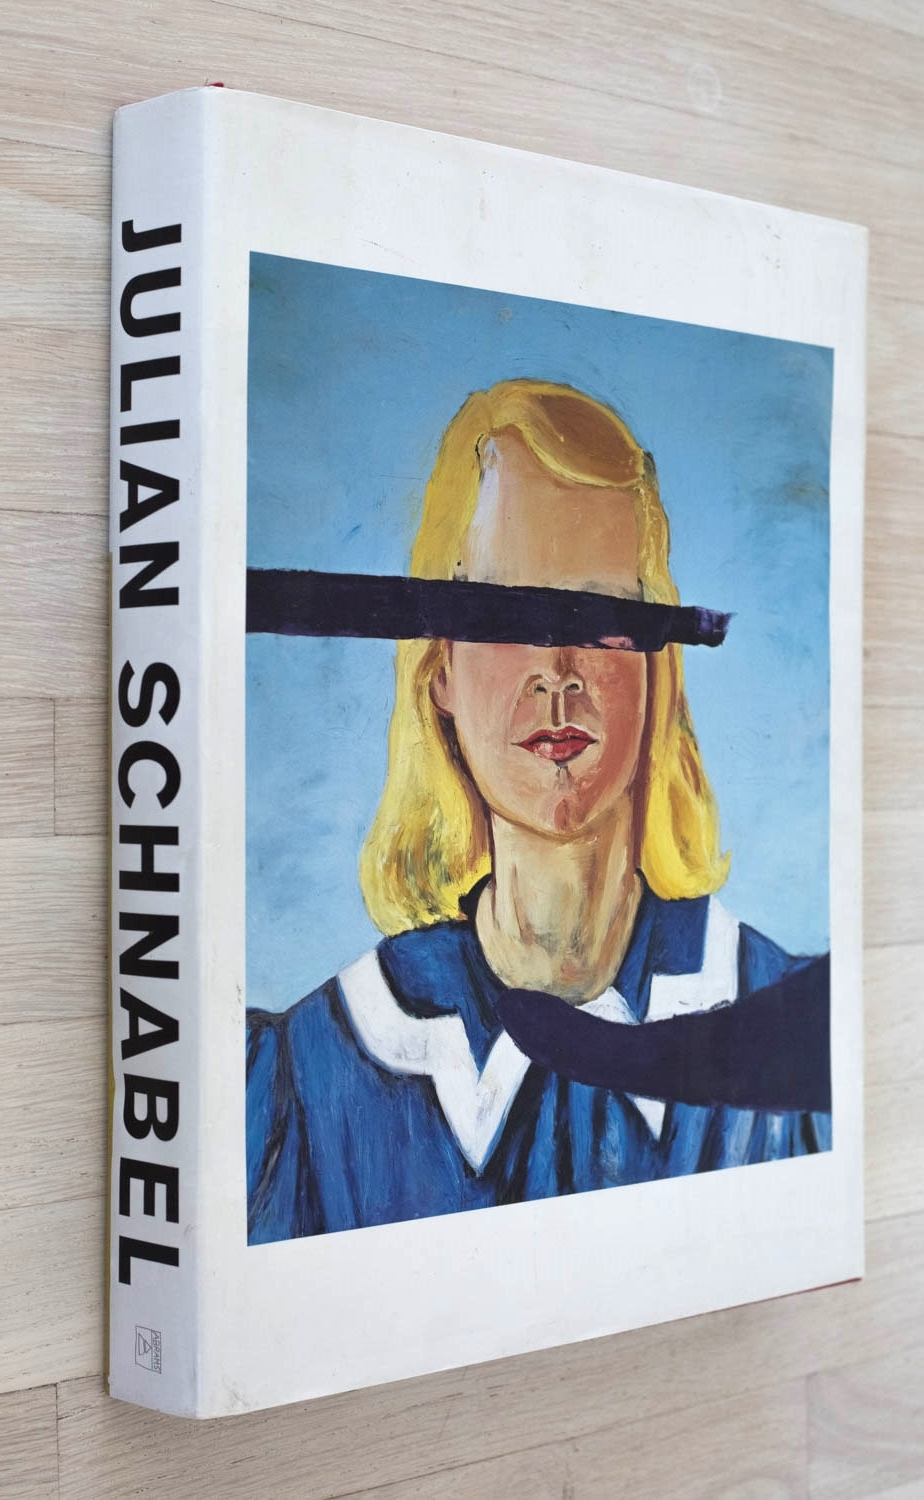 Julian Schnabel  Edited by Richard Olsen. Pandiscio Co, Graphic Design. Maria Pia Gramaglia, Production Manager. Harry N. Abrams, Inc., Publishers.